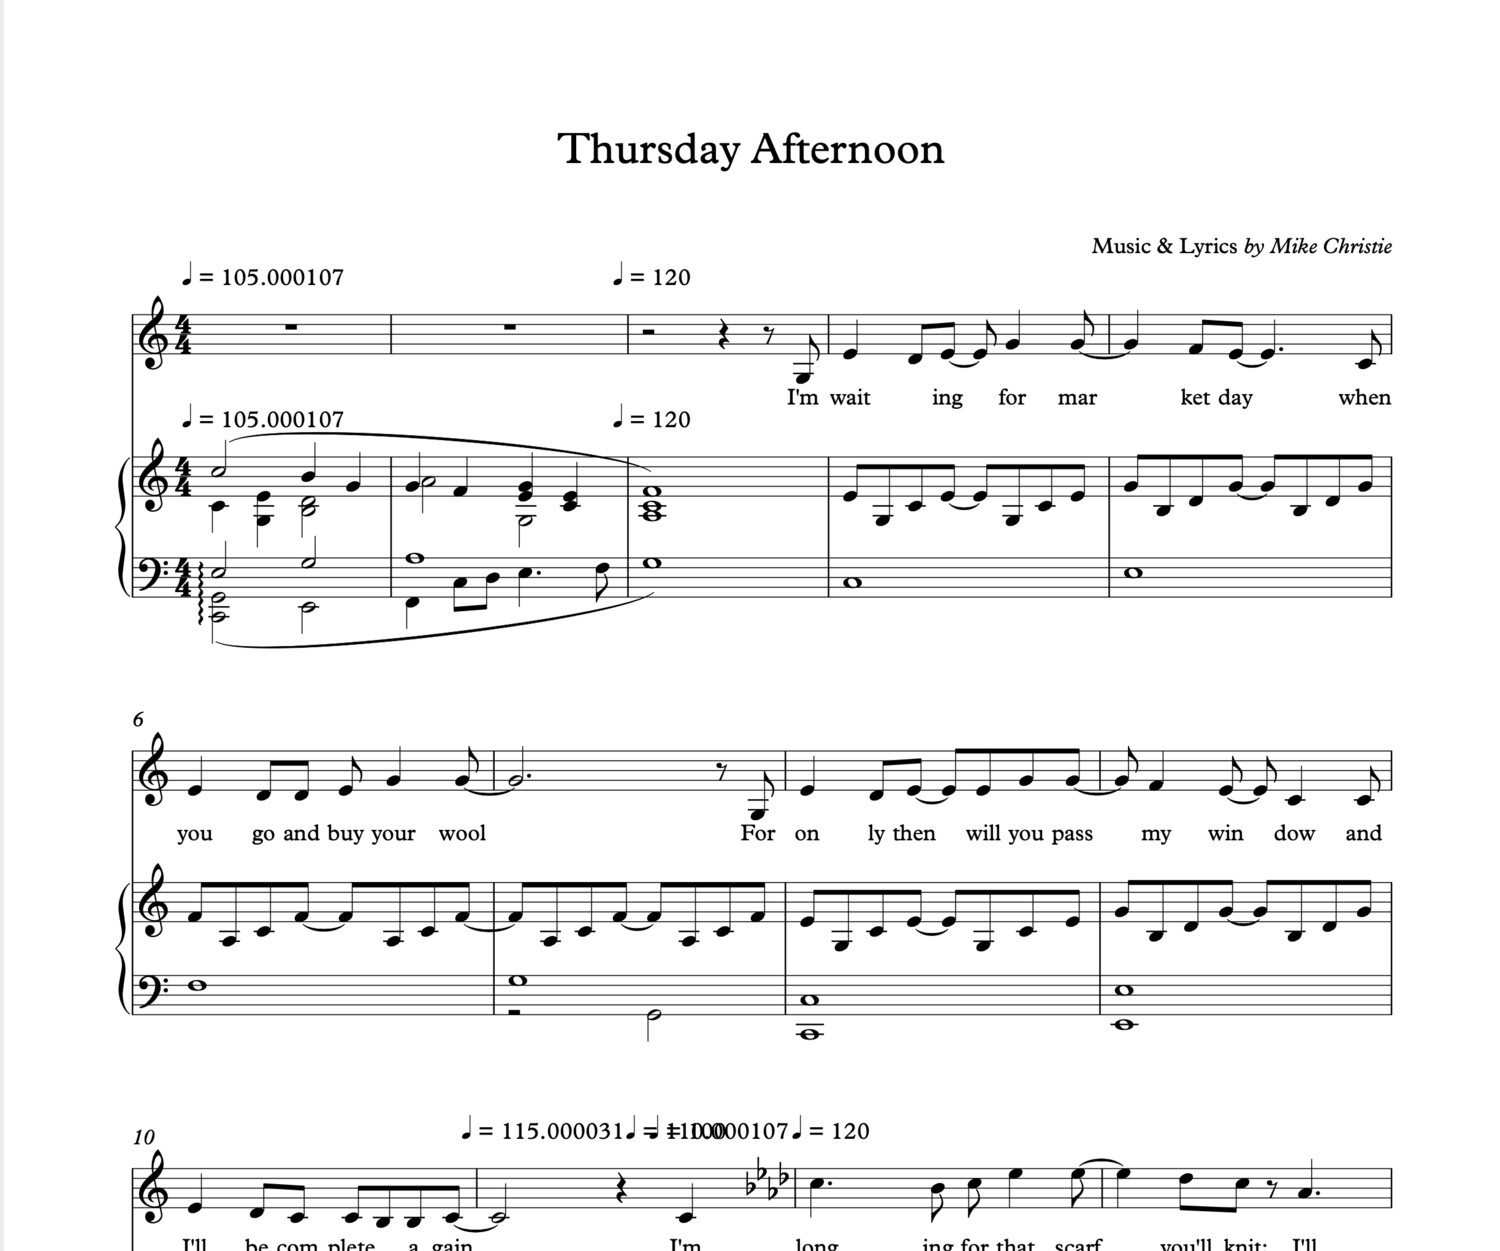 'Thursday Afternoon' Digital Sheet Music